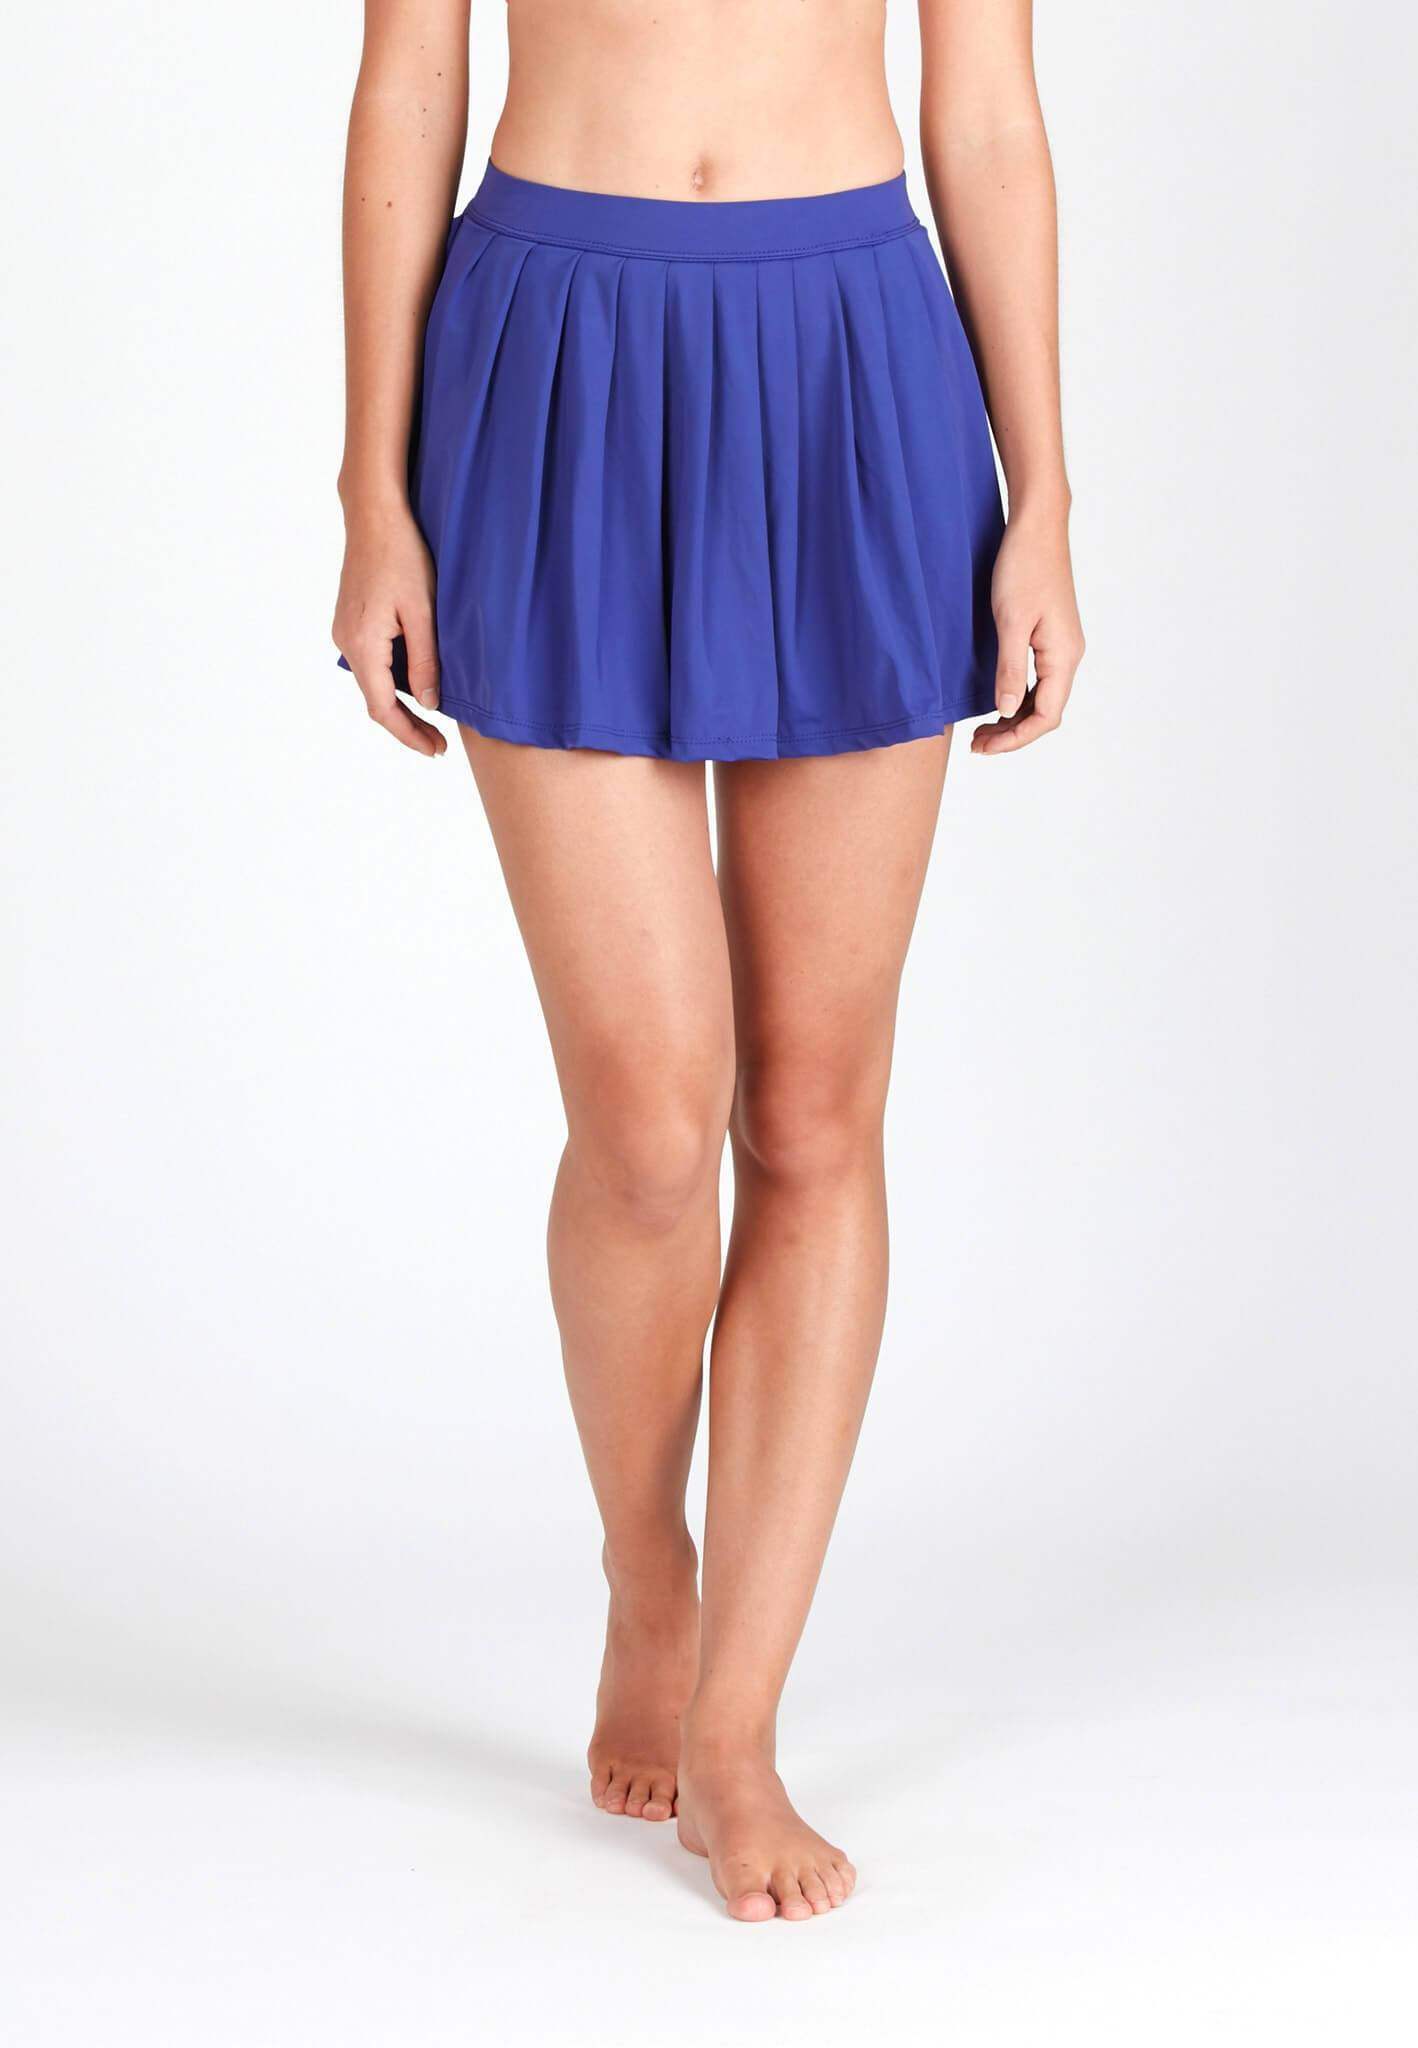 FUNFIT Pleated Swim Skorts in Reflex Blue (XS - XL)